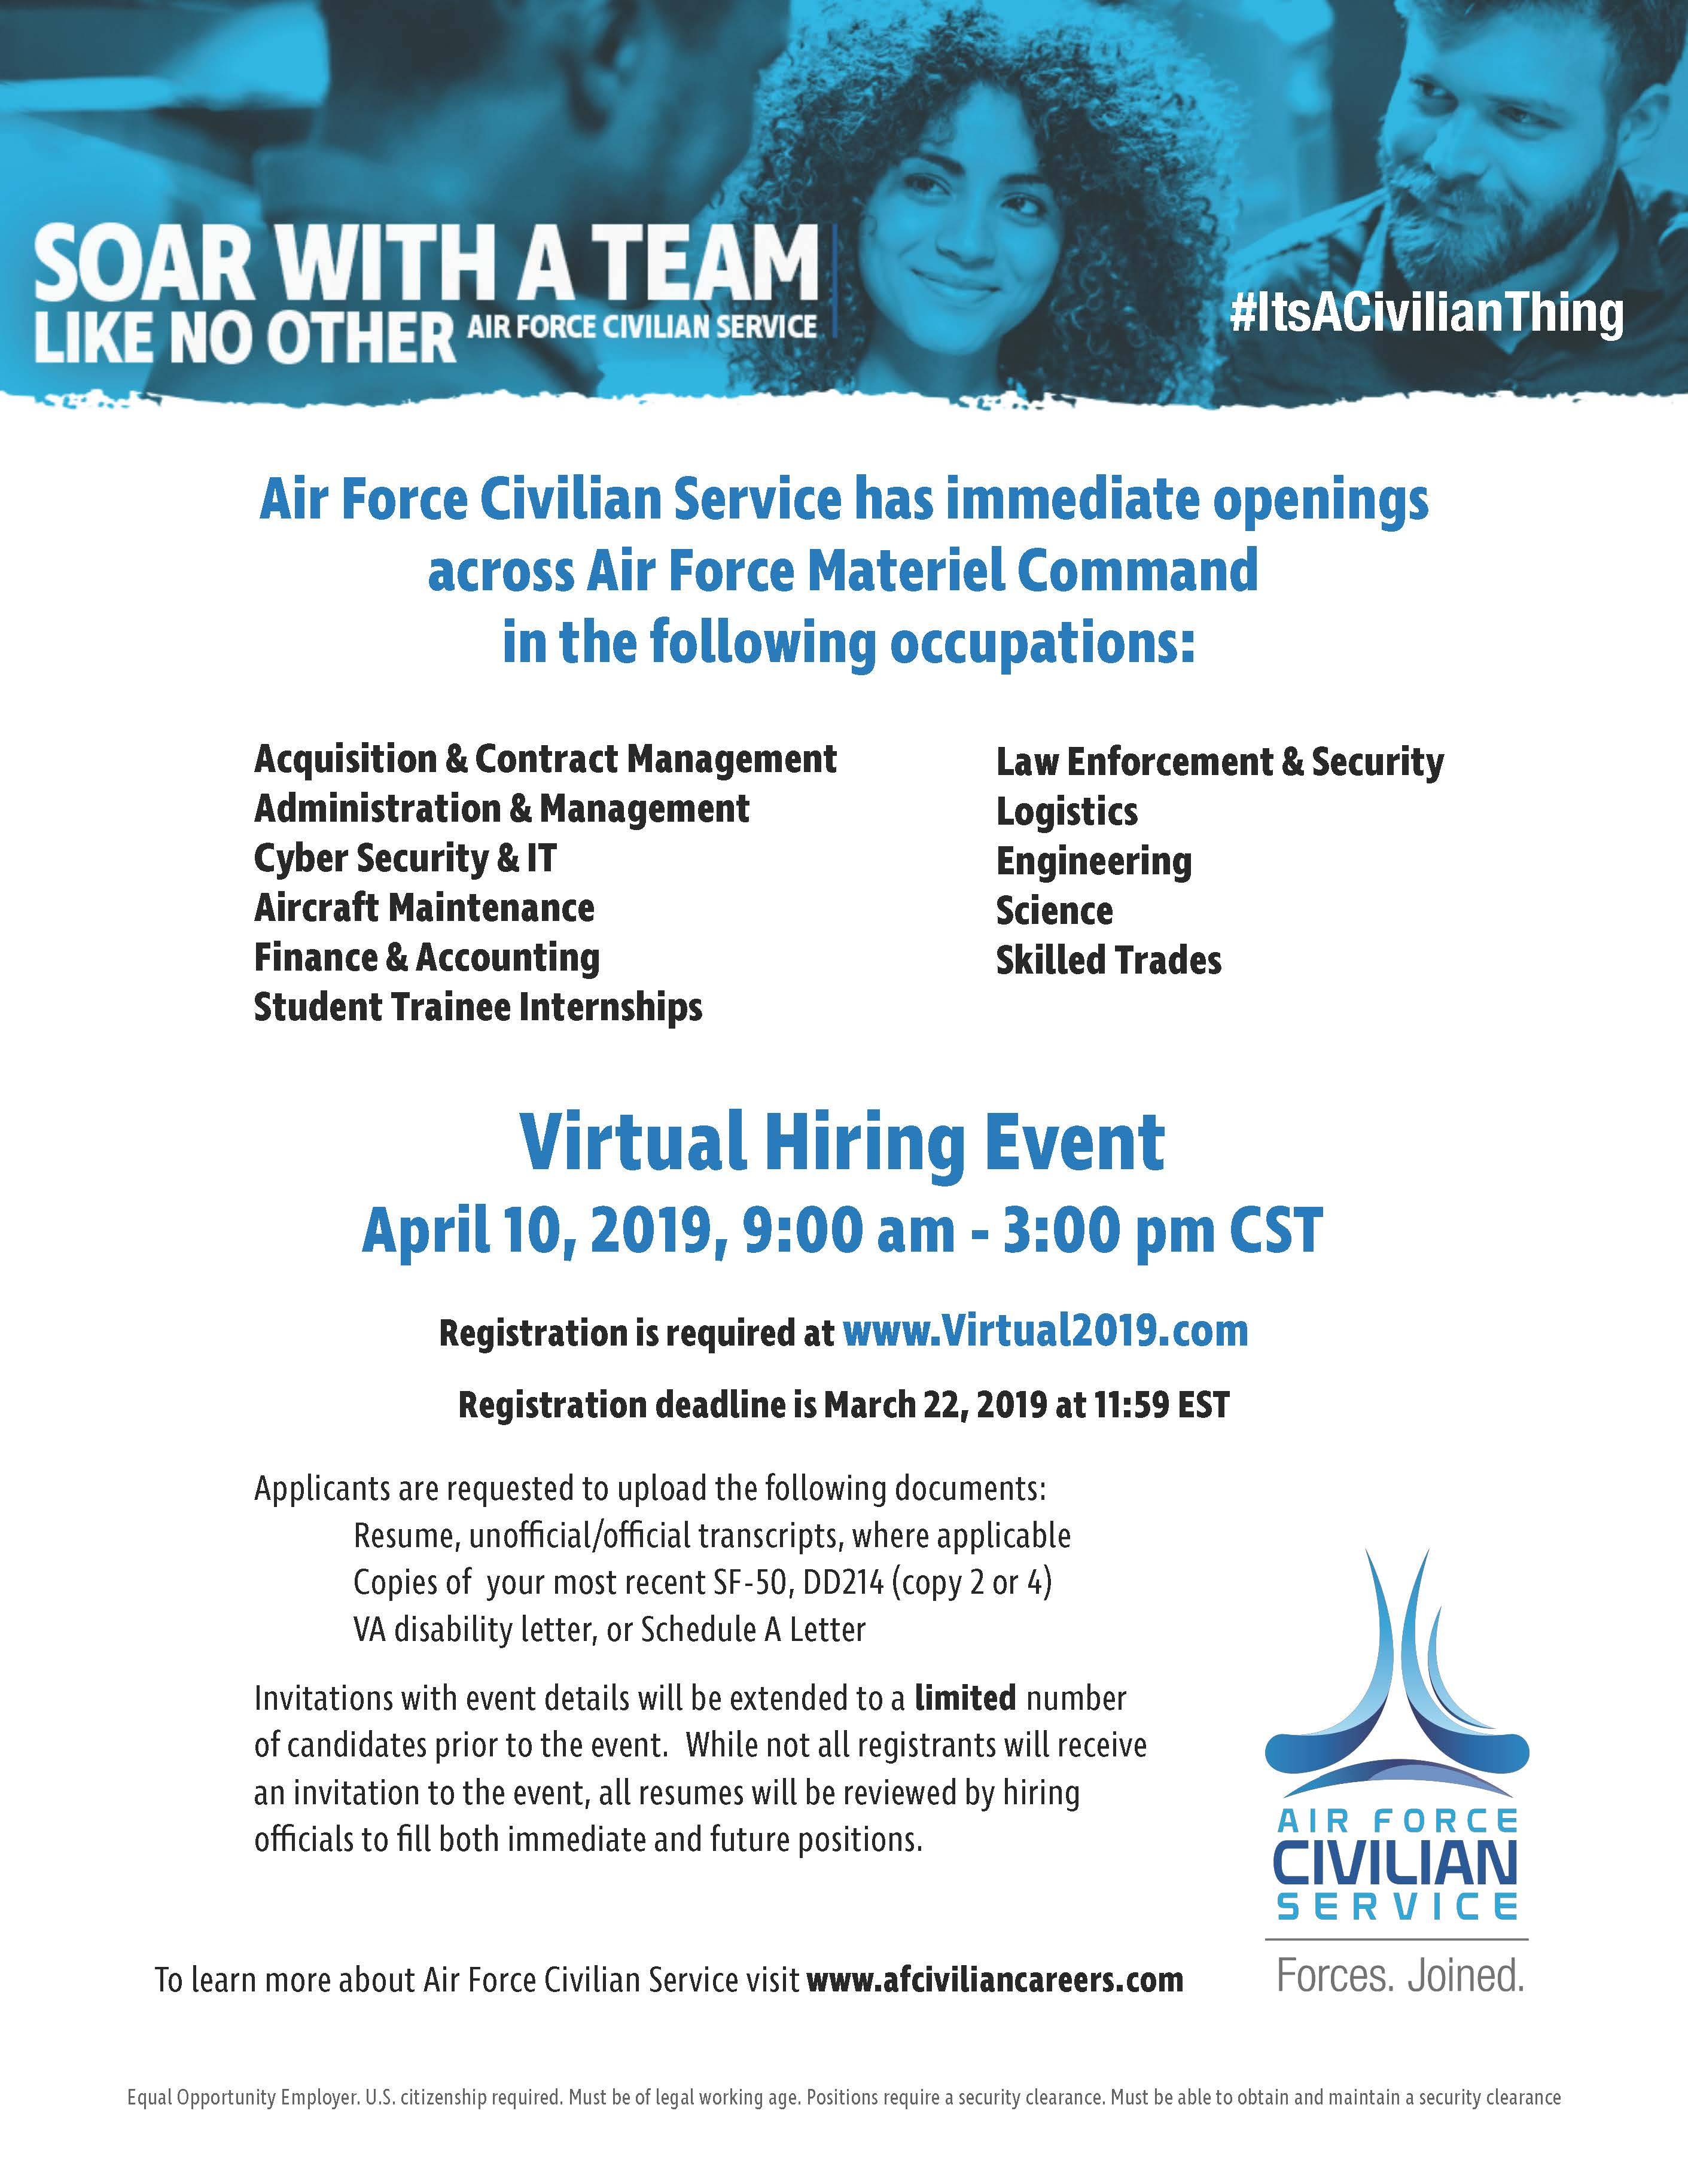 Afmc To Host Virtual Hiring Event Robins Air Force Base Article